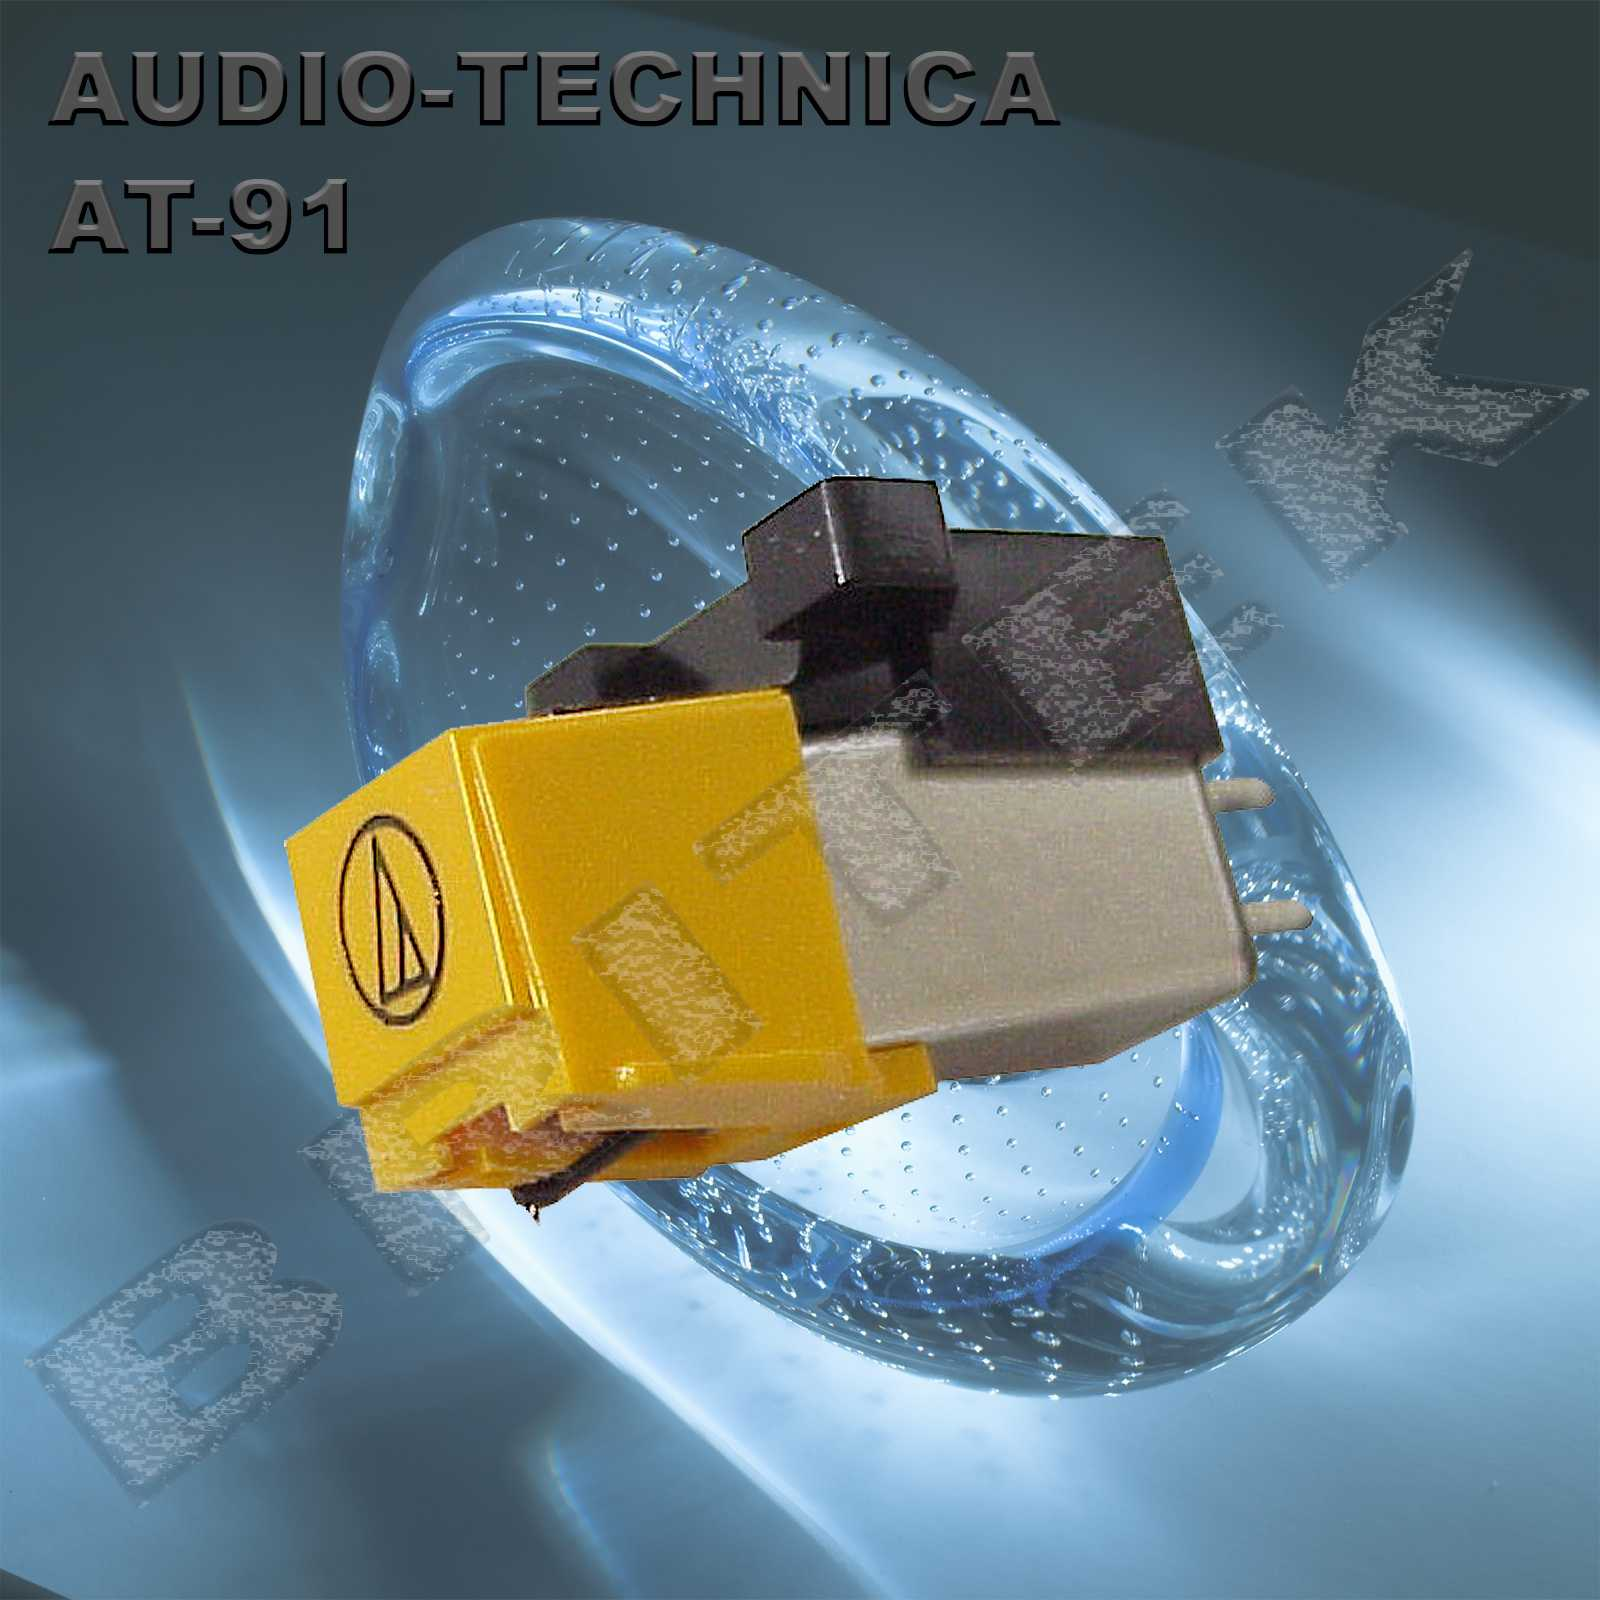 AUDIO-TECHNICA AT-91